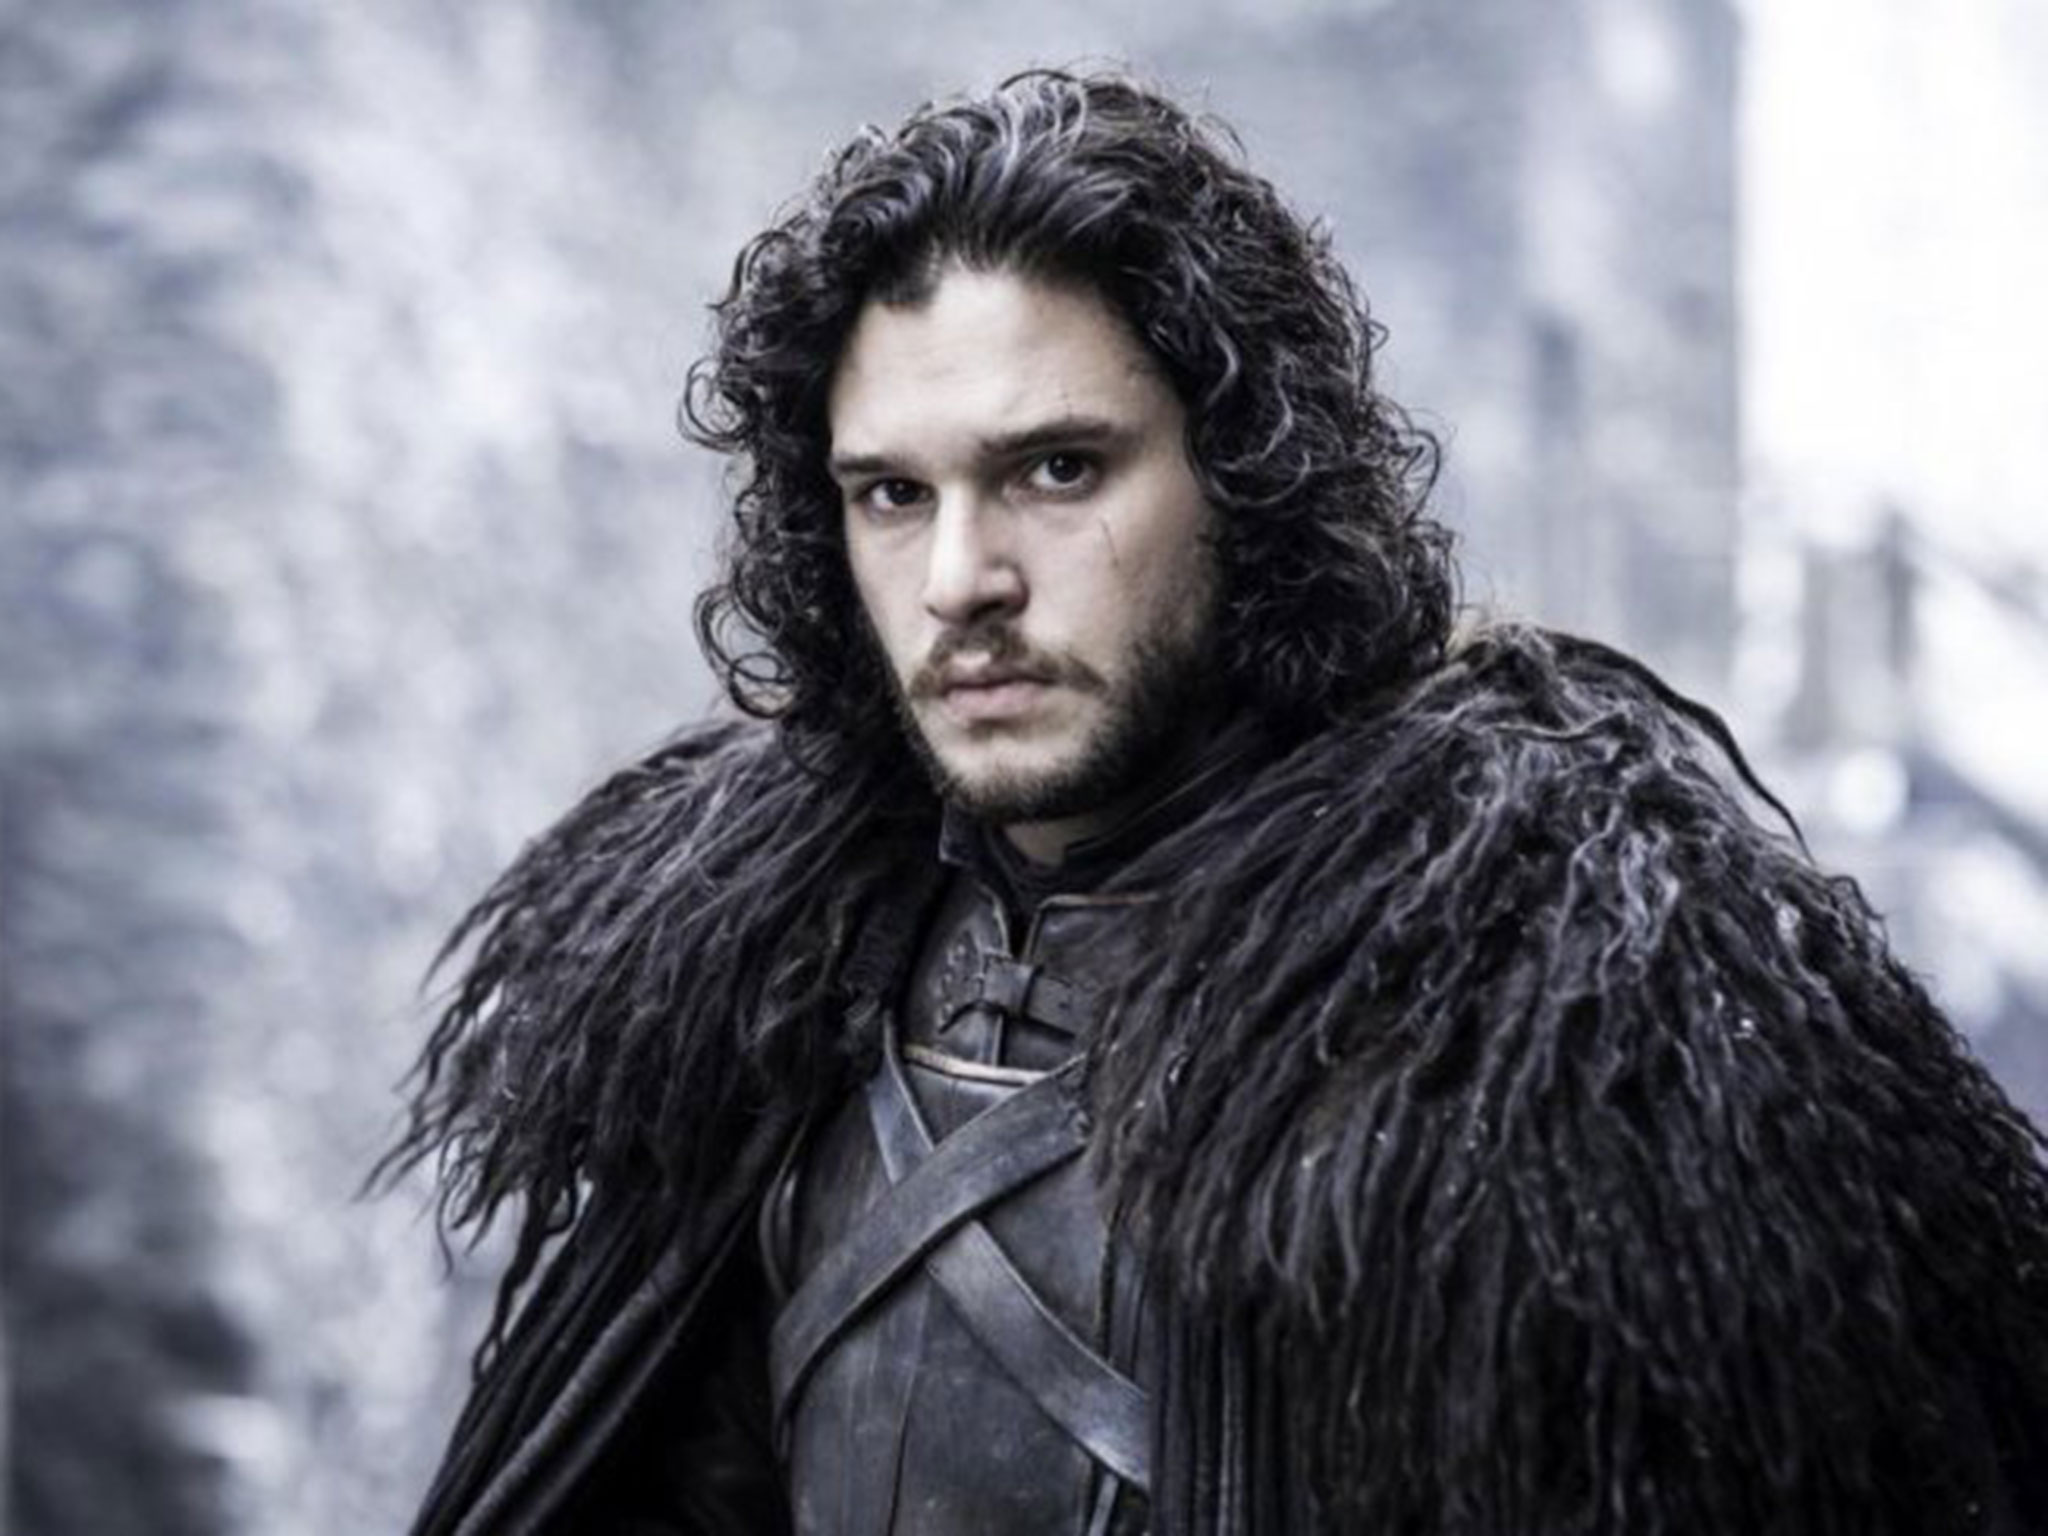 Game of Thrones season 6: Jon Snow seemingly confirmed dead by season 5 script | The Independent